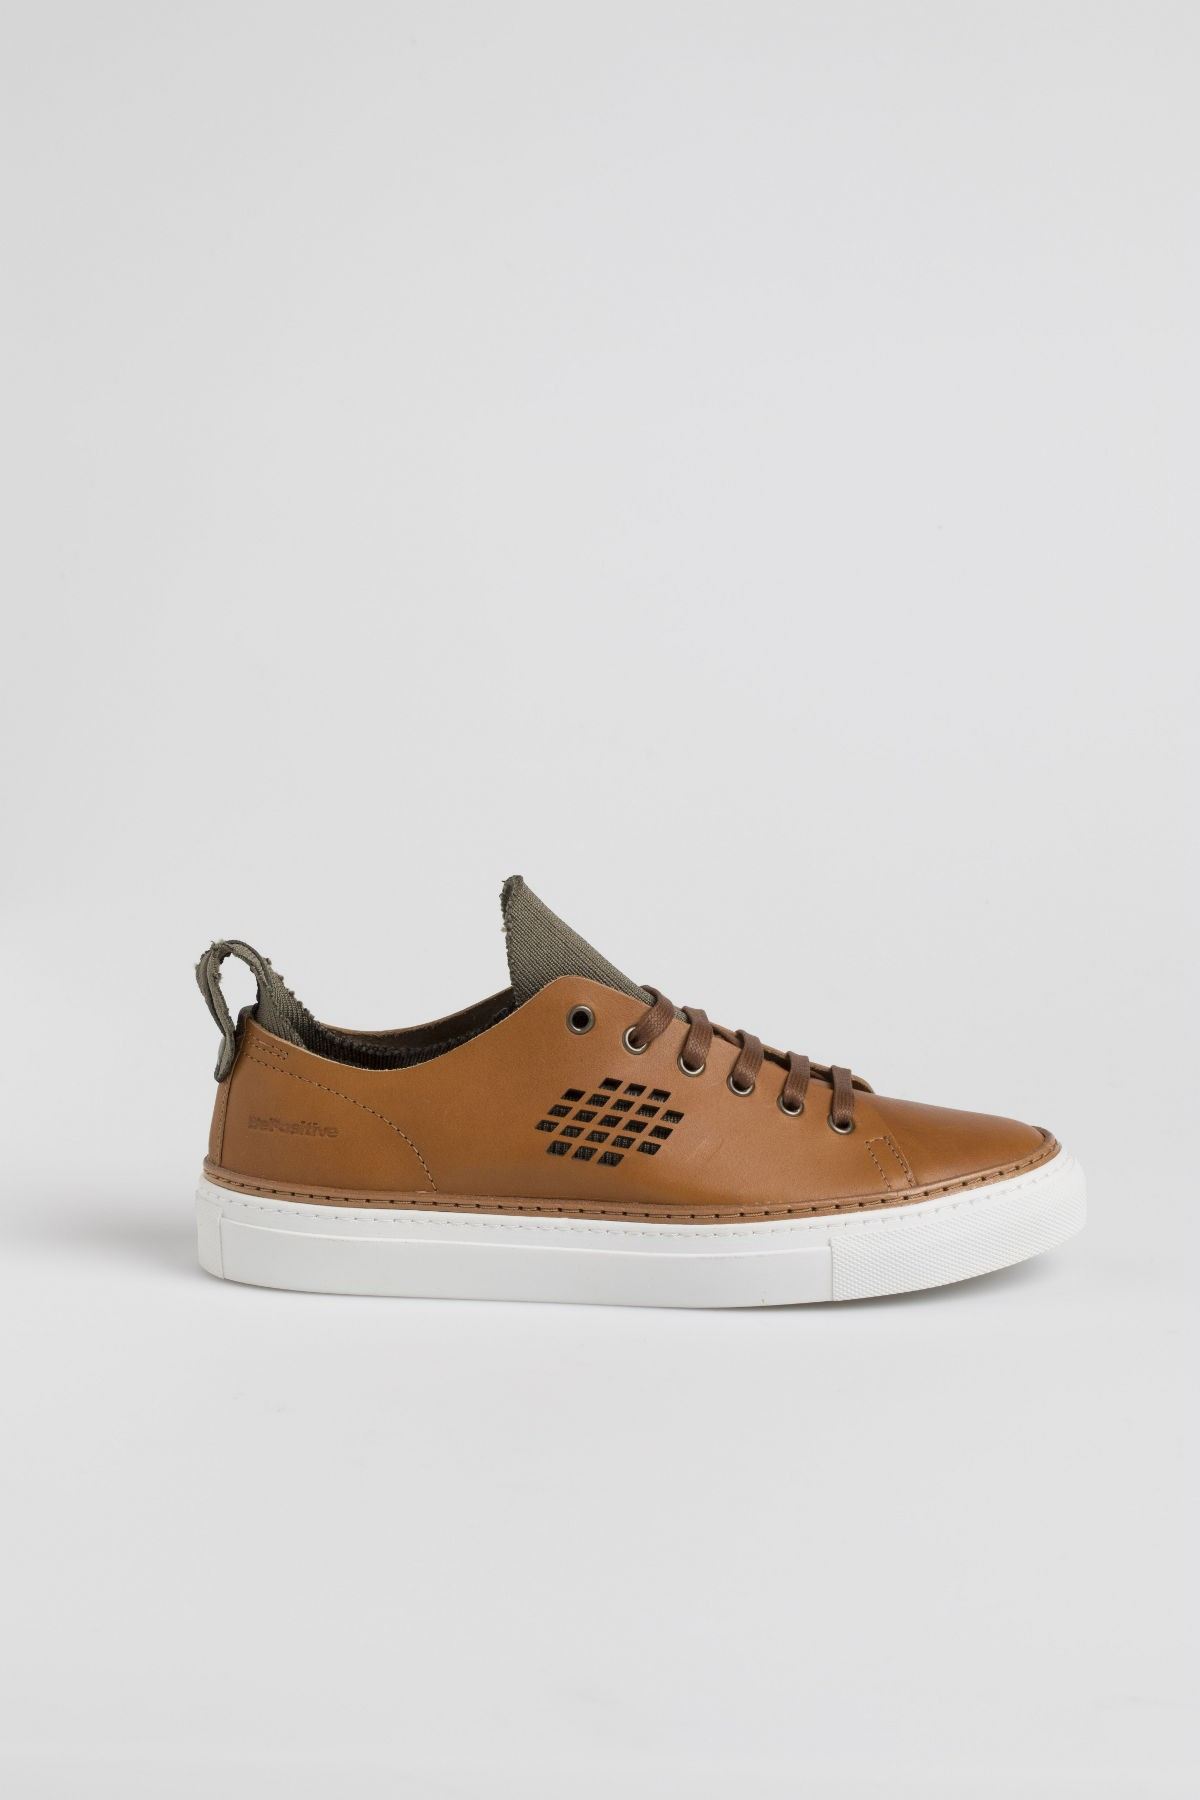 Shoes for man BEPOSITIVE